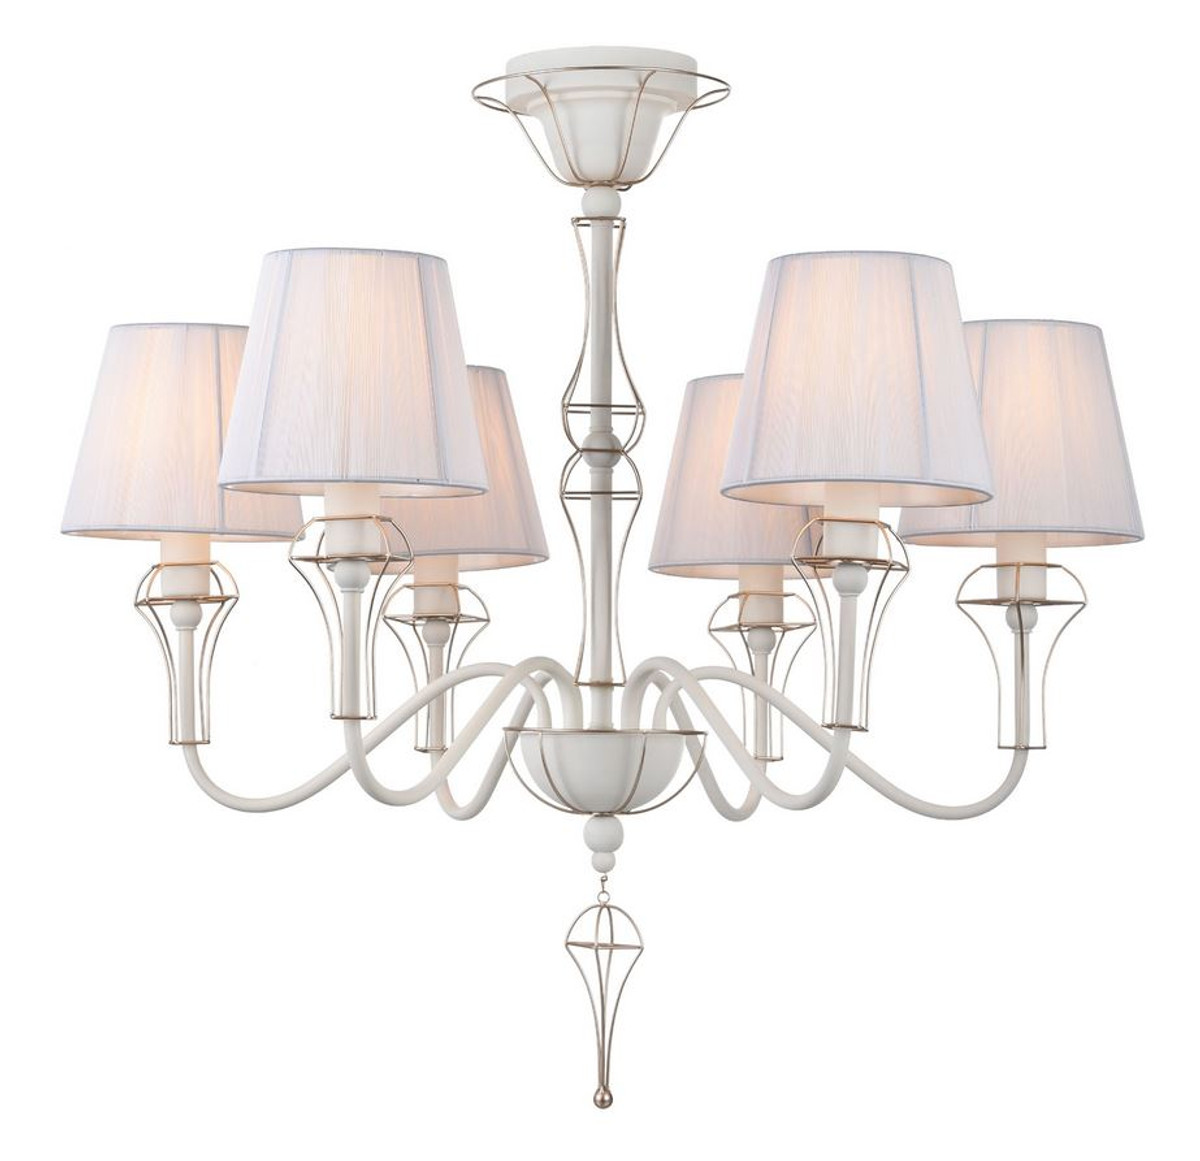 Gut Casa Padrino Baroque Style Chandelier With Decorative Gold Wire Framing    Baroque Style Lights U0026 Chandeliers